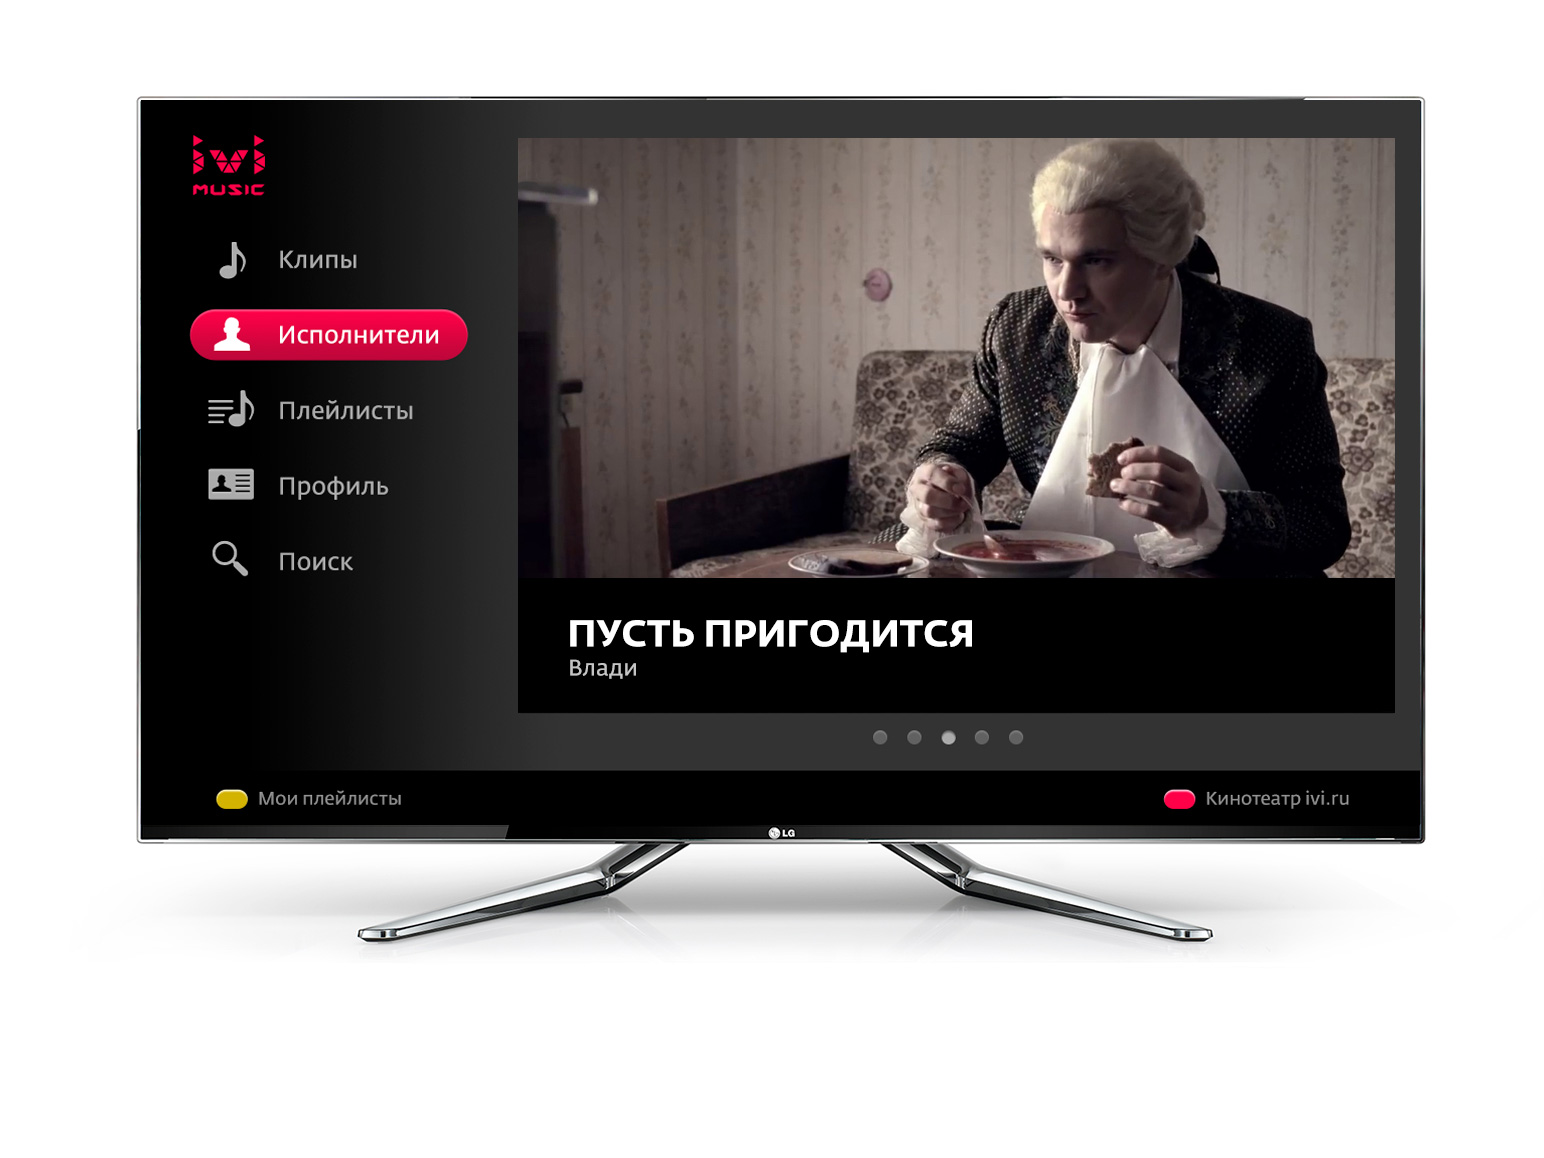 music.ivi.ru LG Smart TV